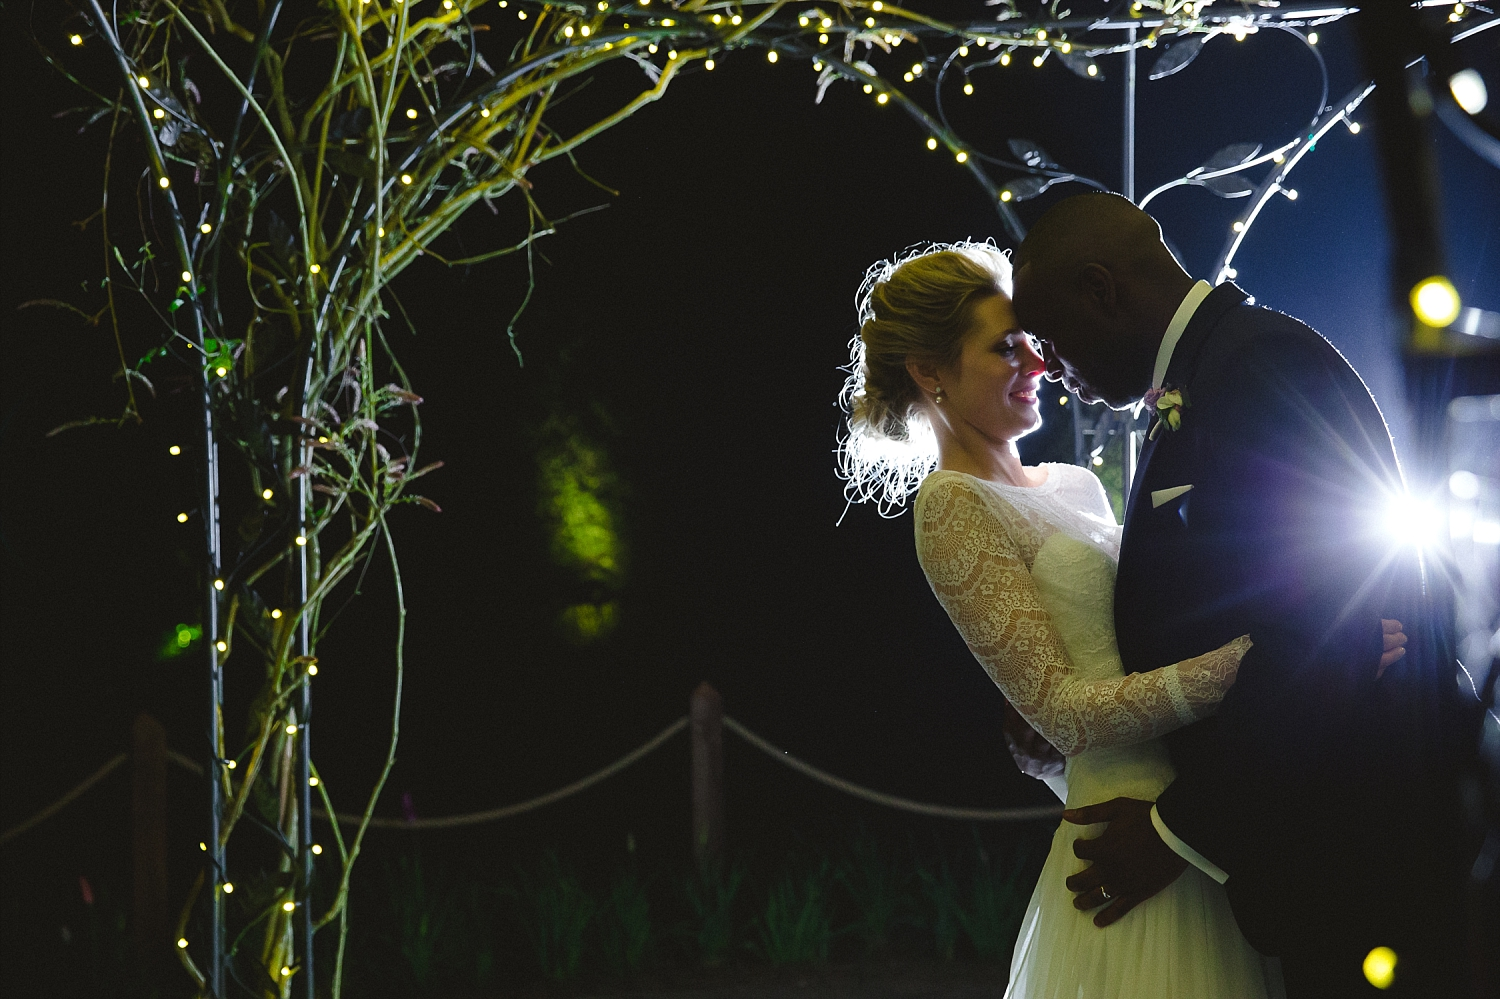 Gaynes Park Wedding Photographer - Romantic Portrait at Night